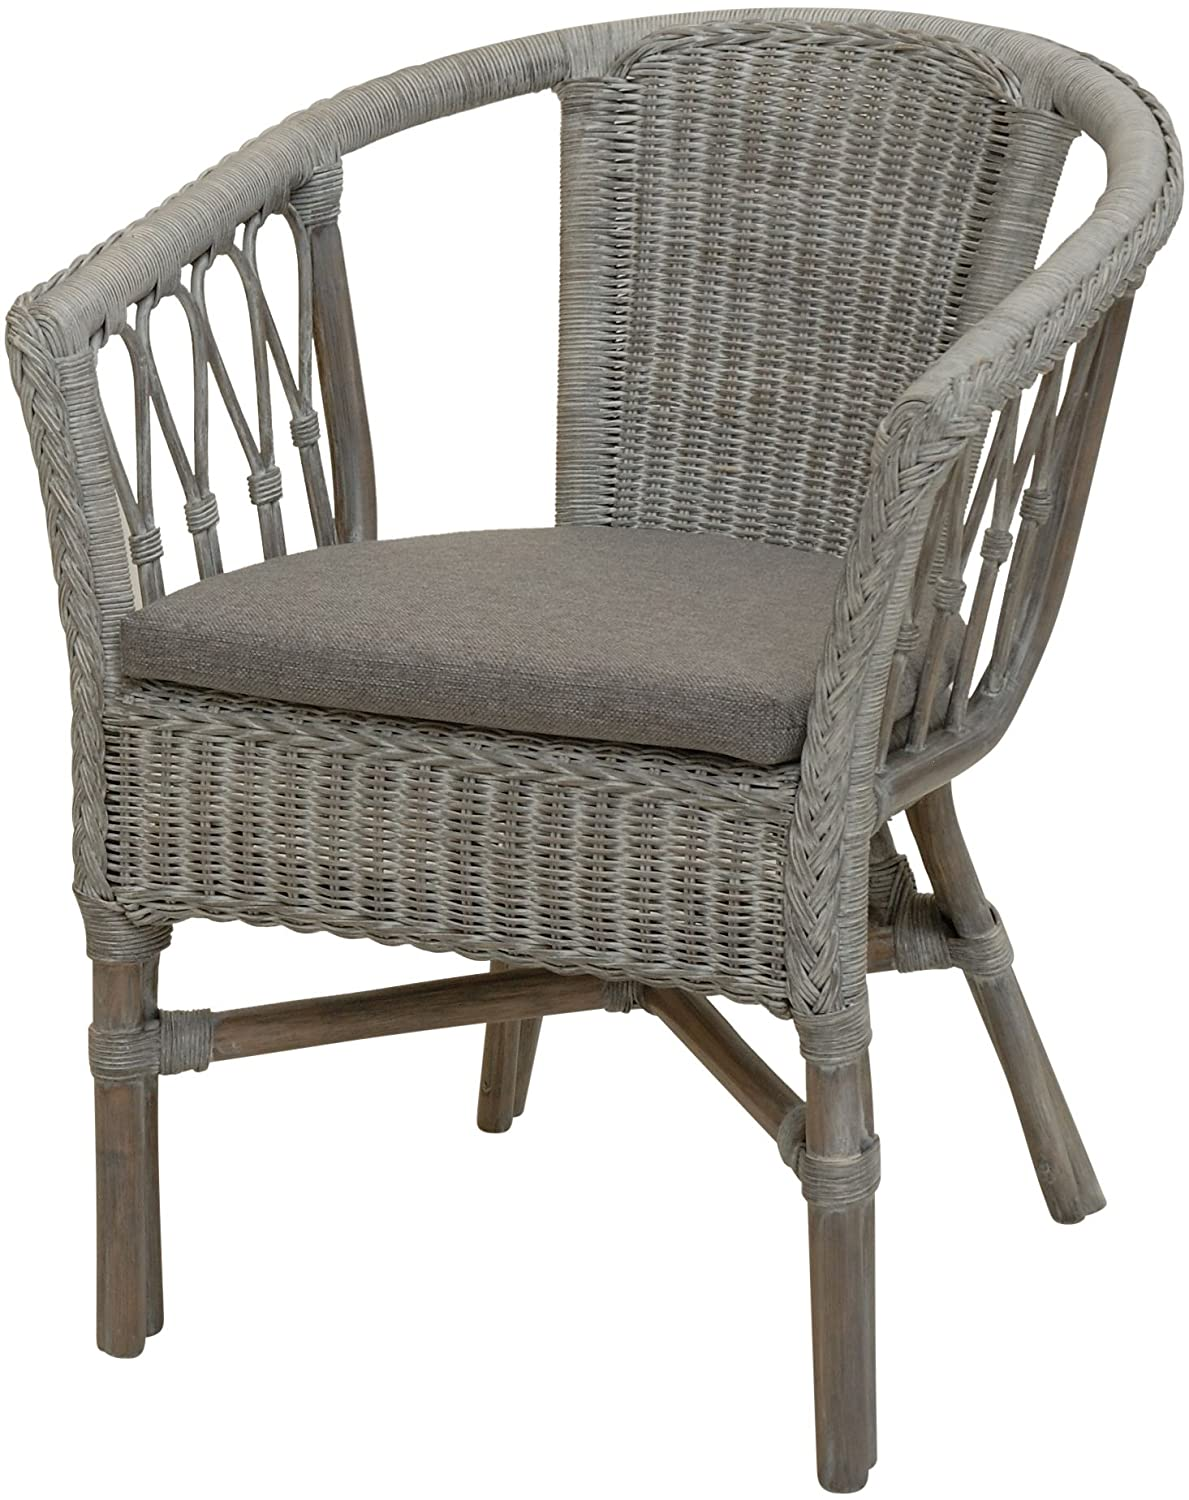 korb.outlet Stackable Rattan Chair/Chair in Natural Rattan with Cushion in Royal Grey